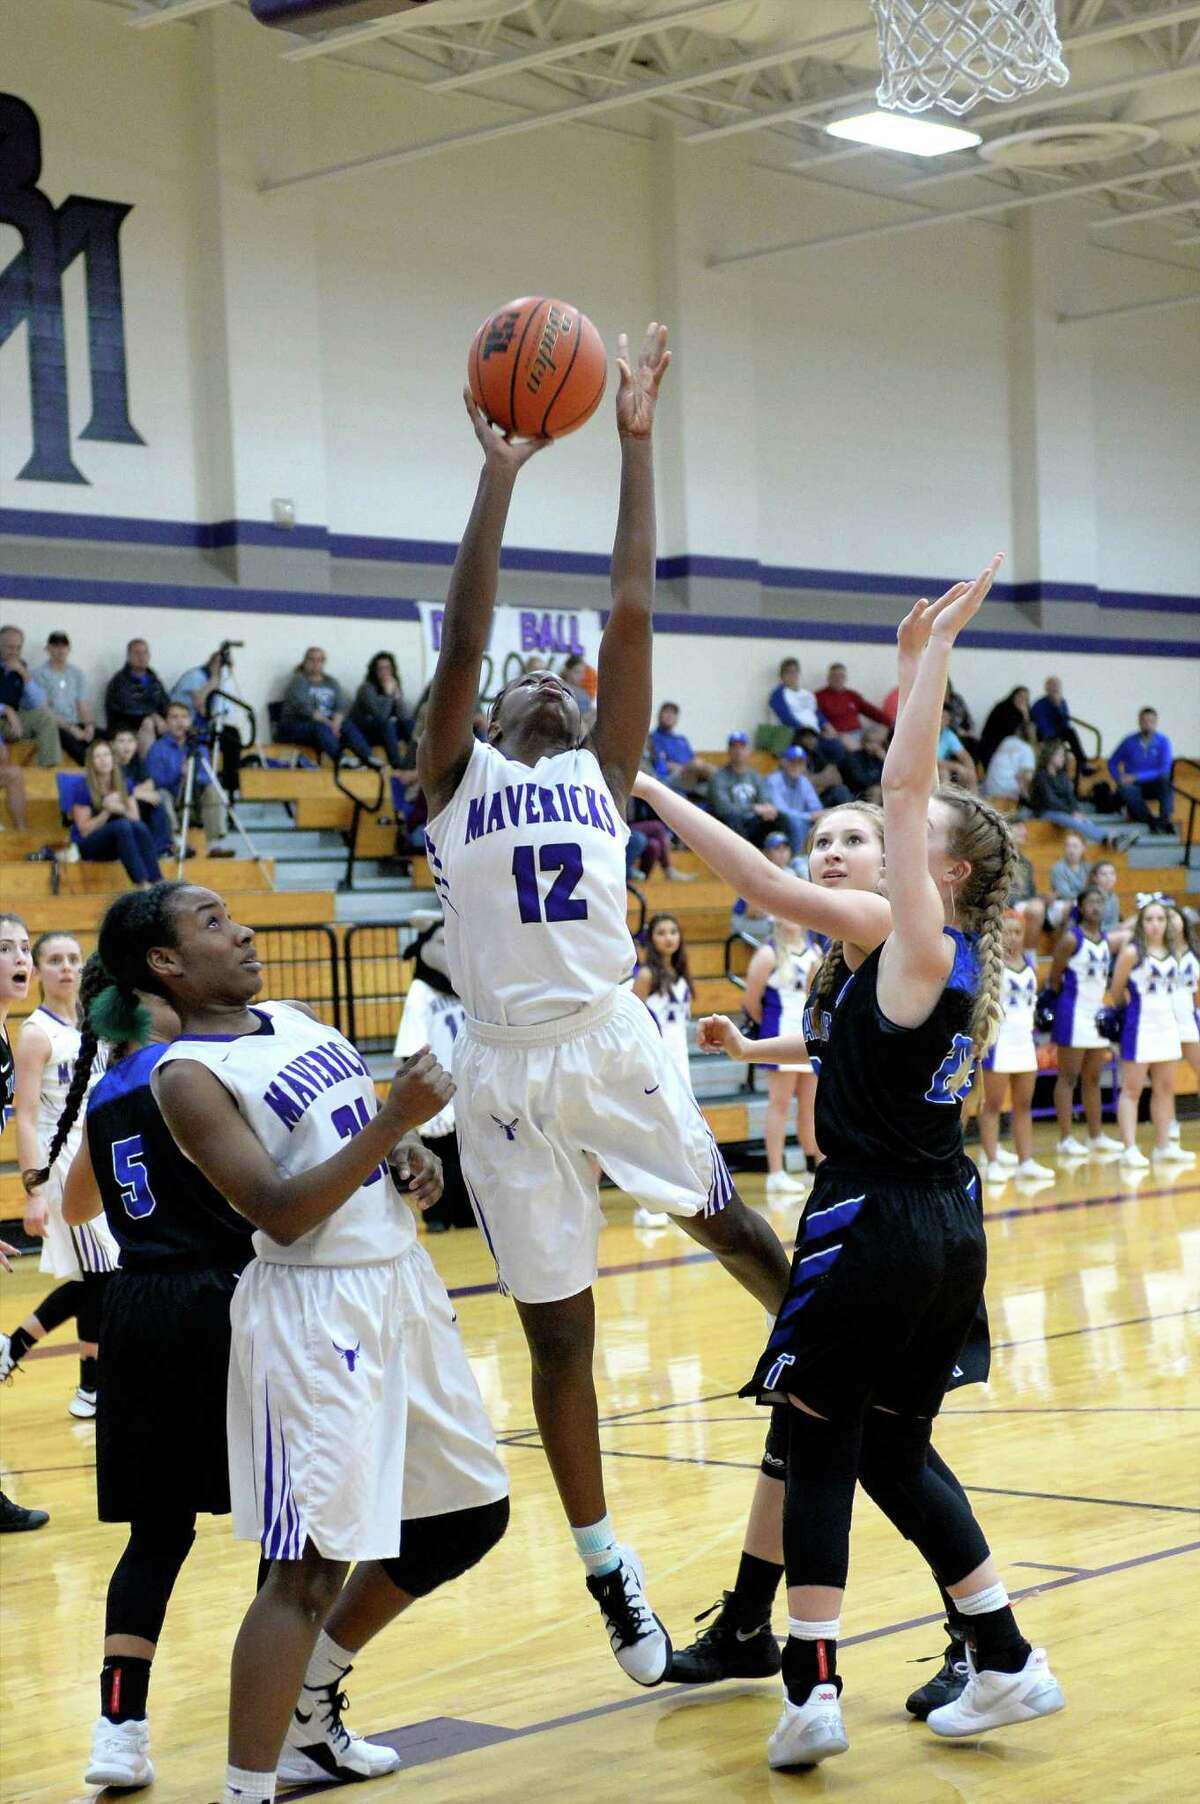 Jasmine Pettit (12) of Morton Ranch attempts a jump shot during the second half of a girls basketball game between the Morton Ranch Mavericks and the Taylor Mustangs on Tuesday January 31, 2017 at Morton Ranch High School, Katy, TX.